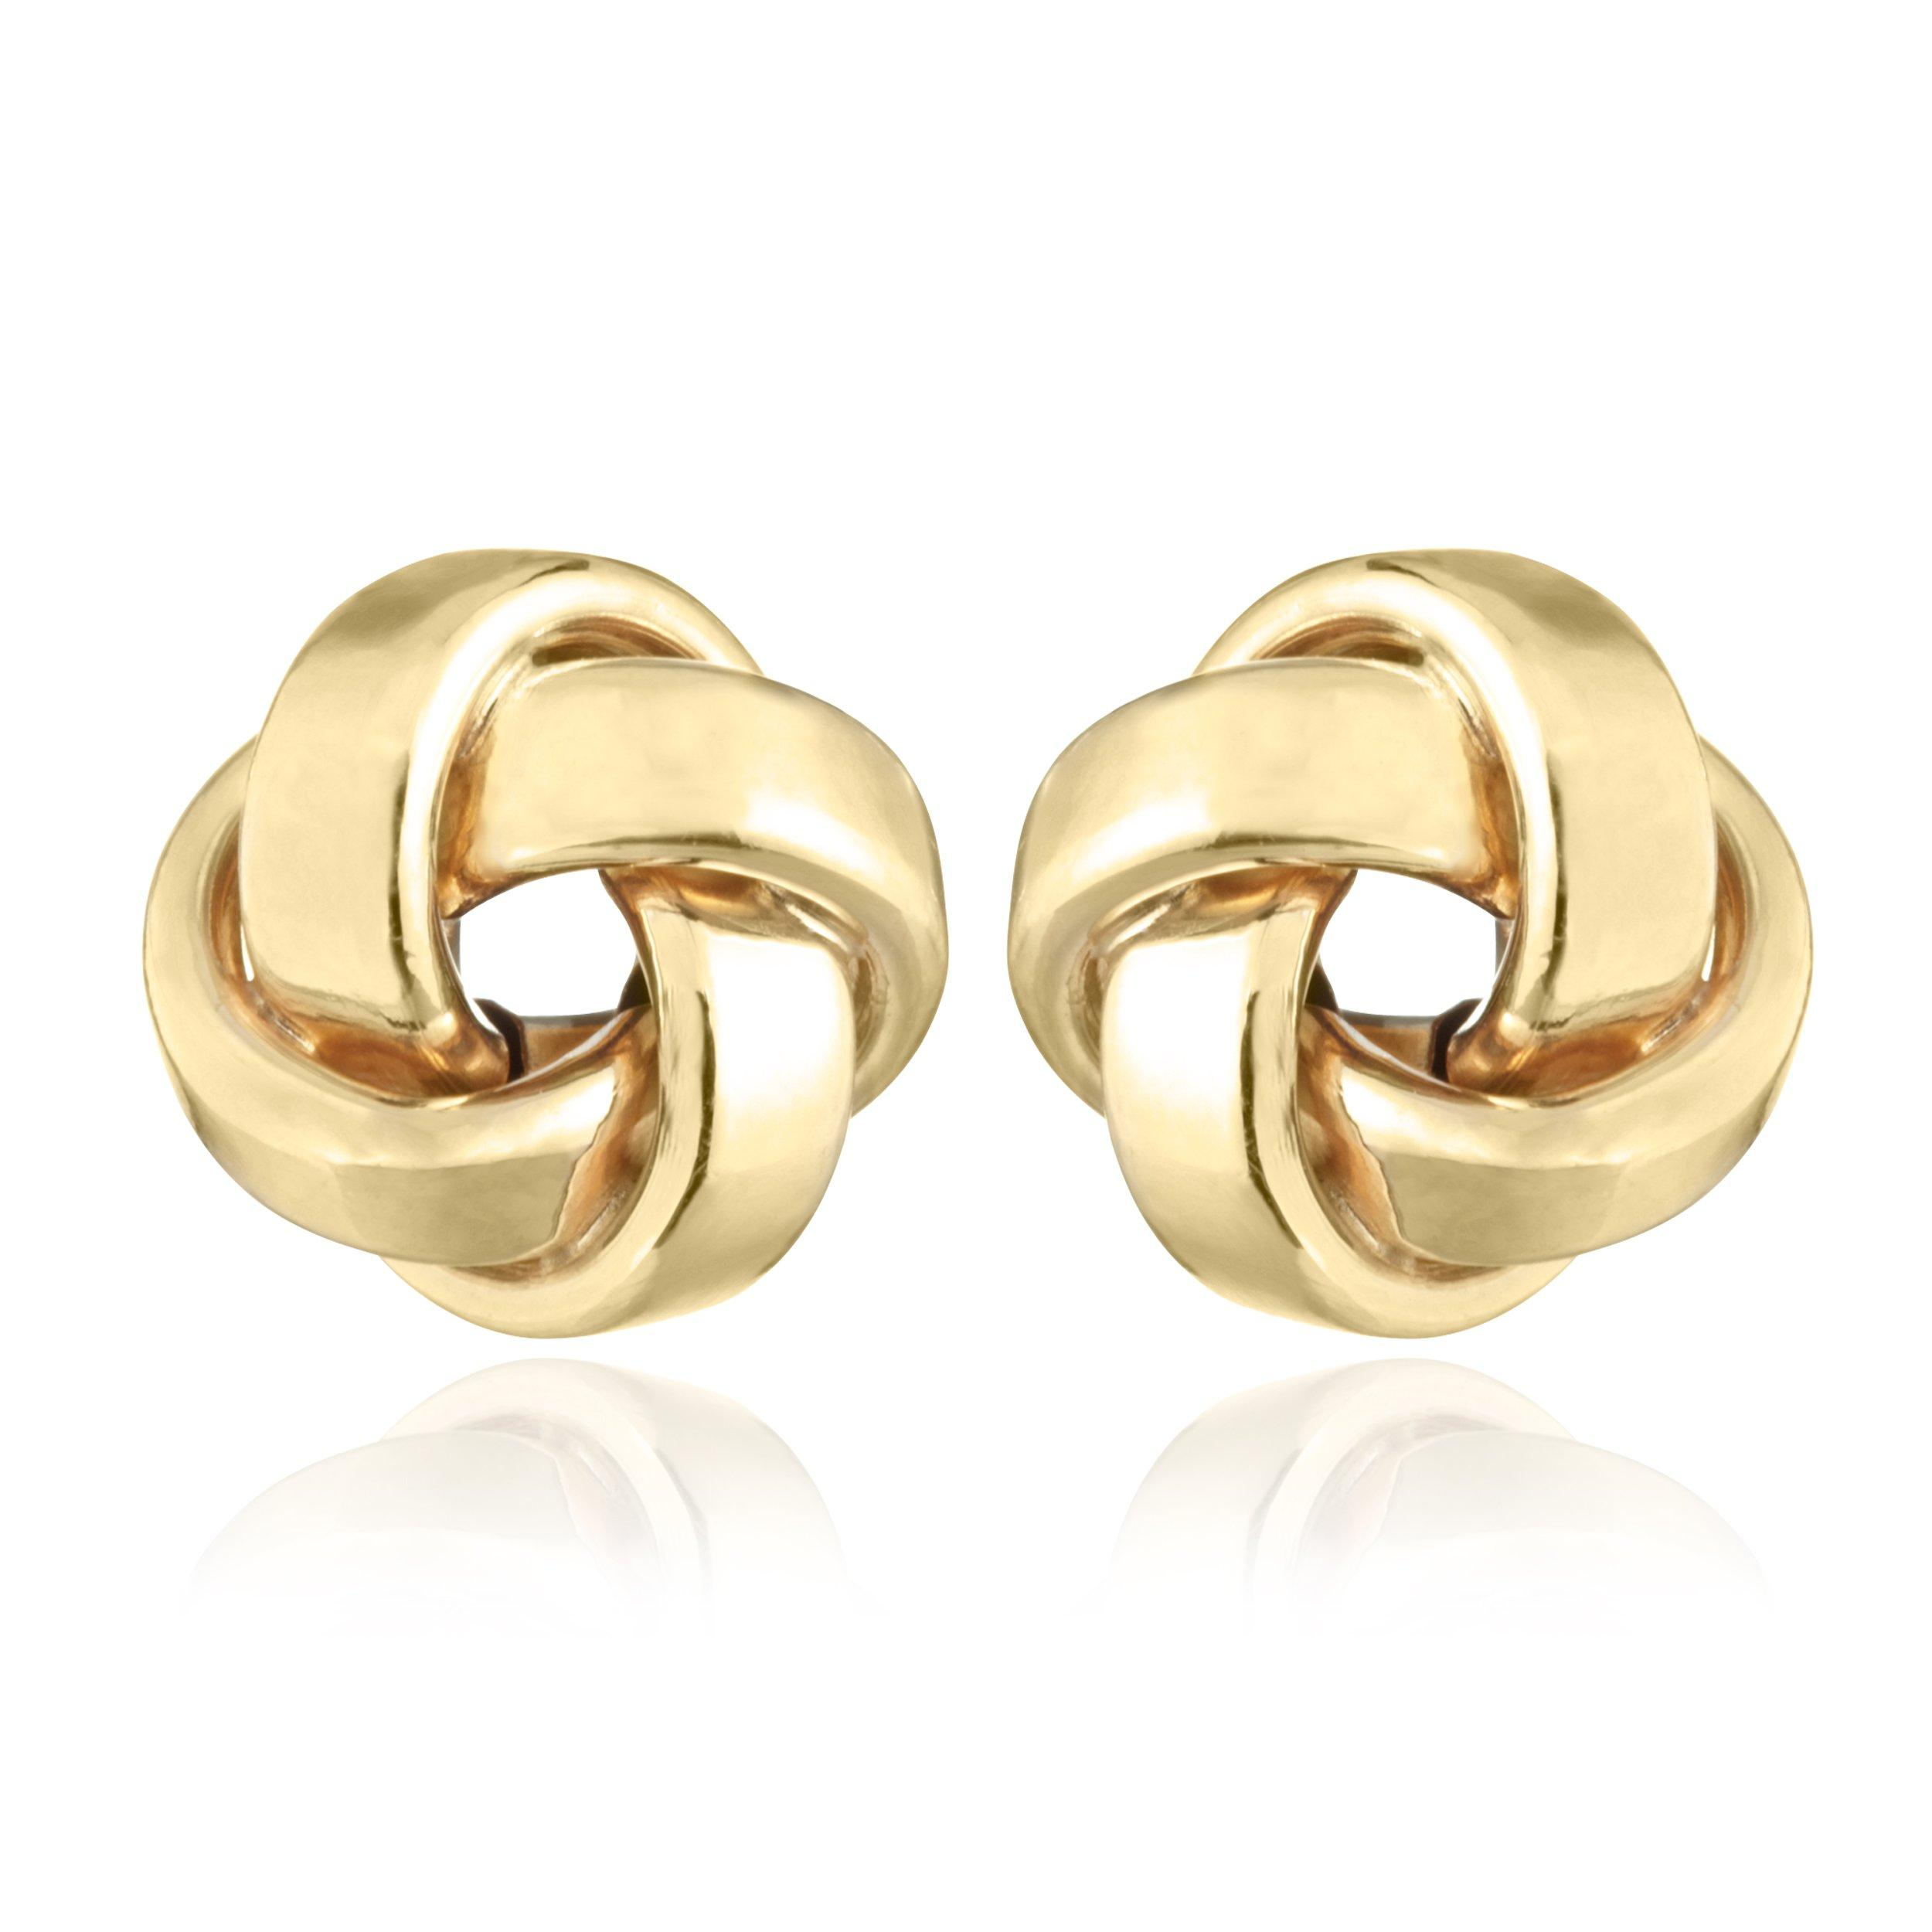 9ct Gold Knot Stud Earrings